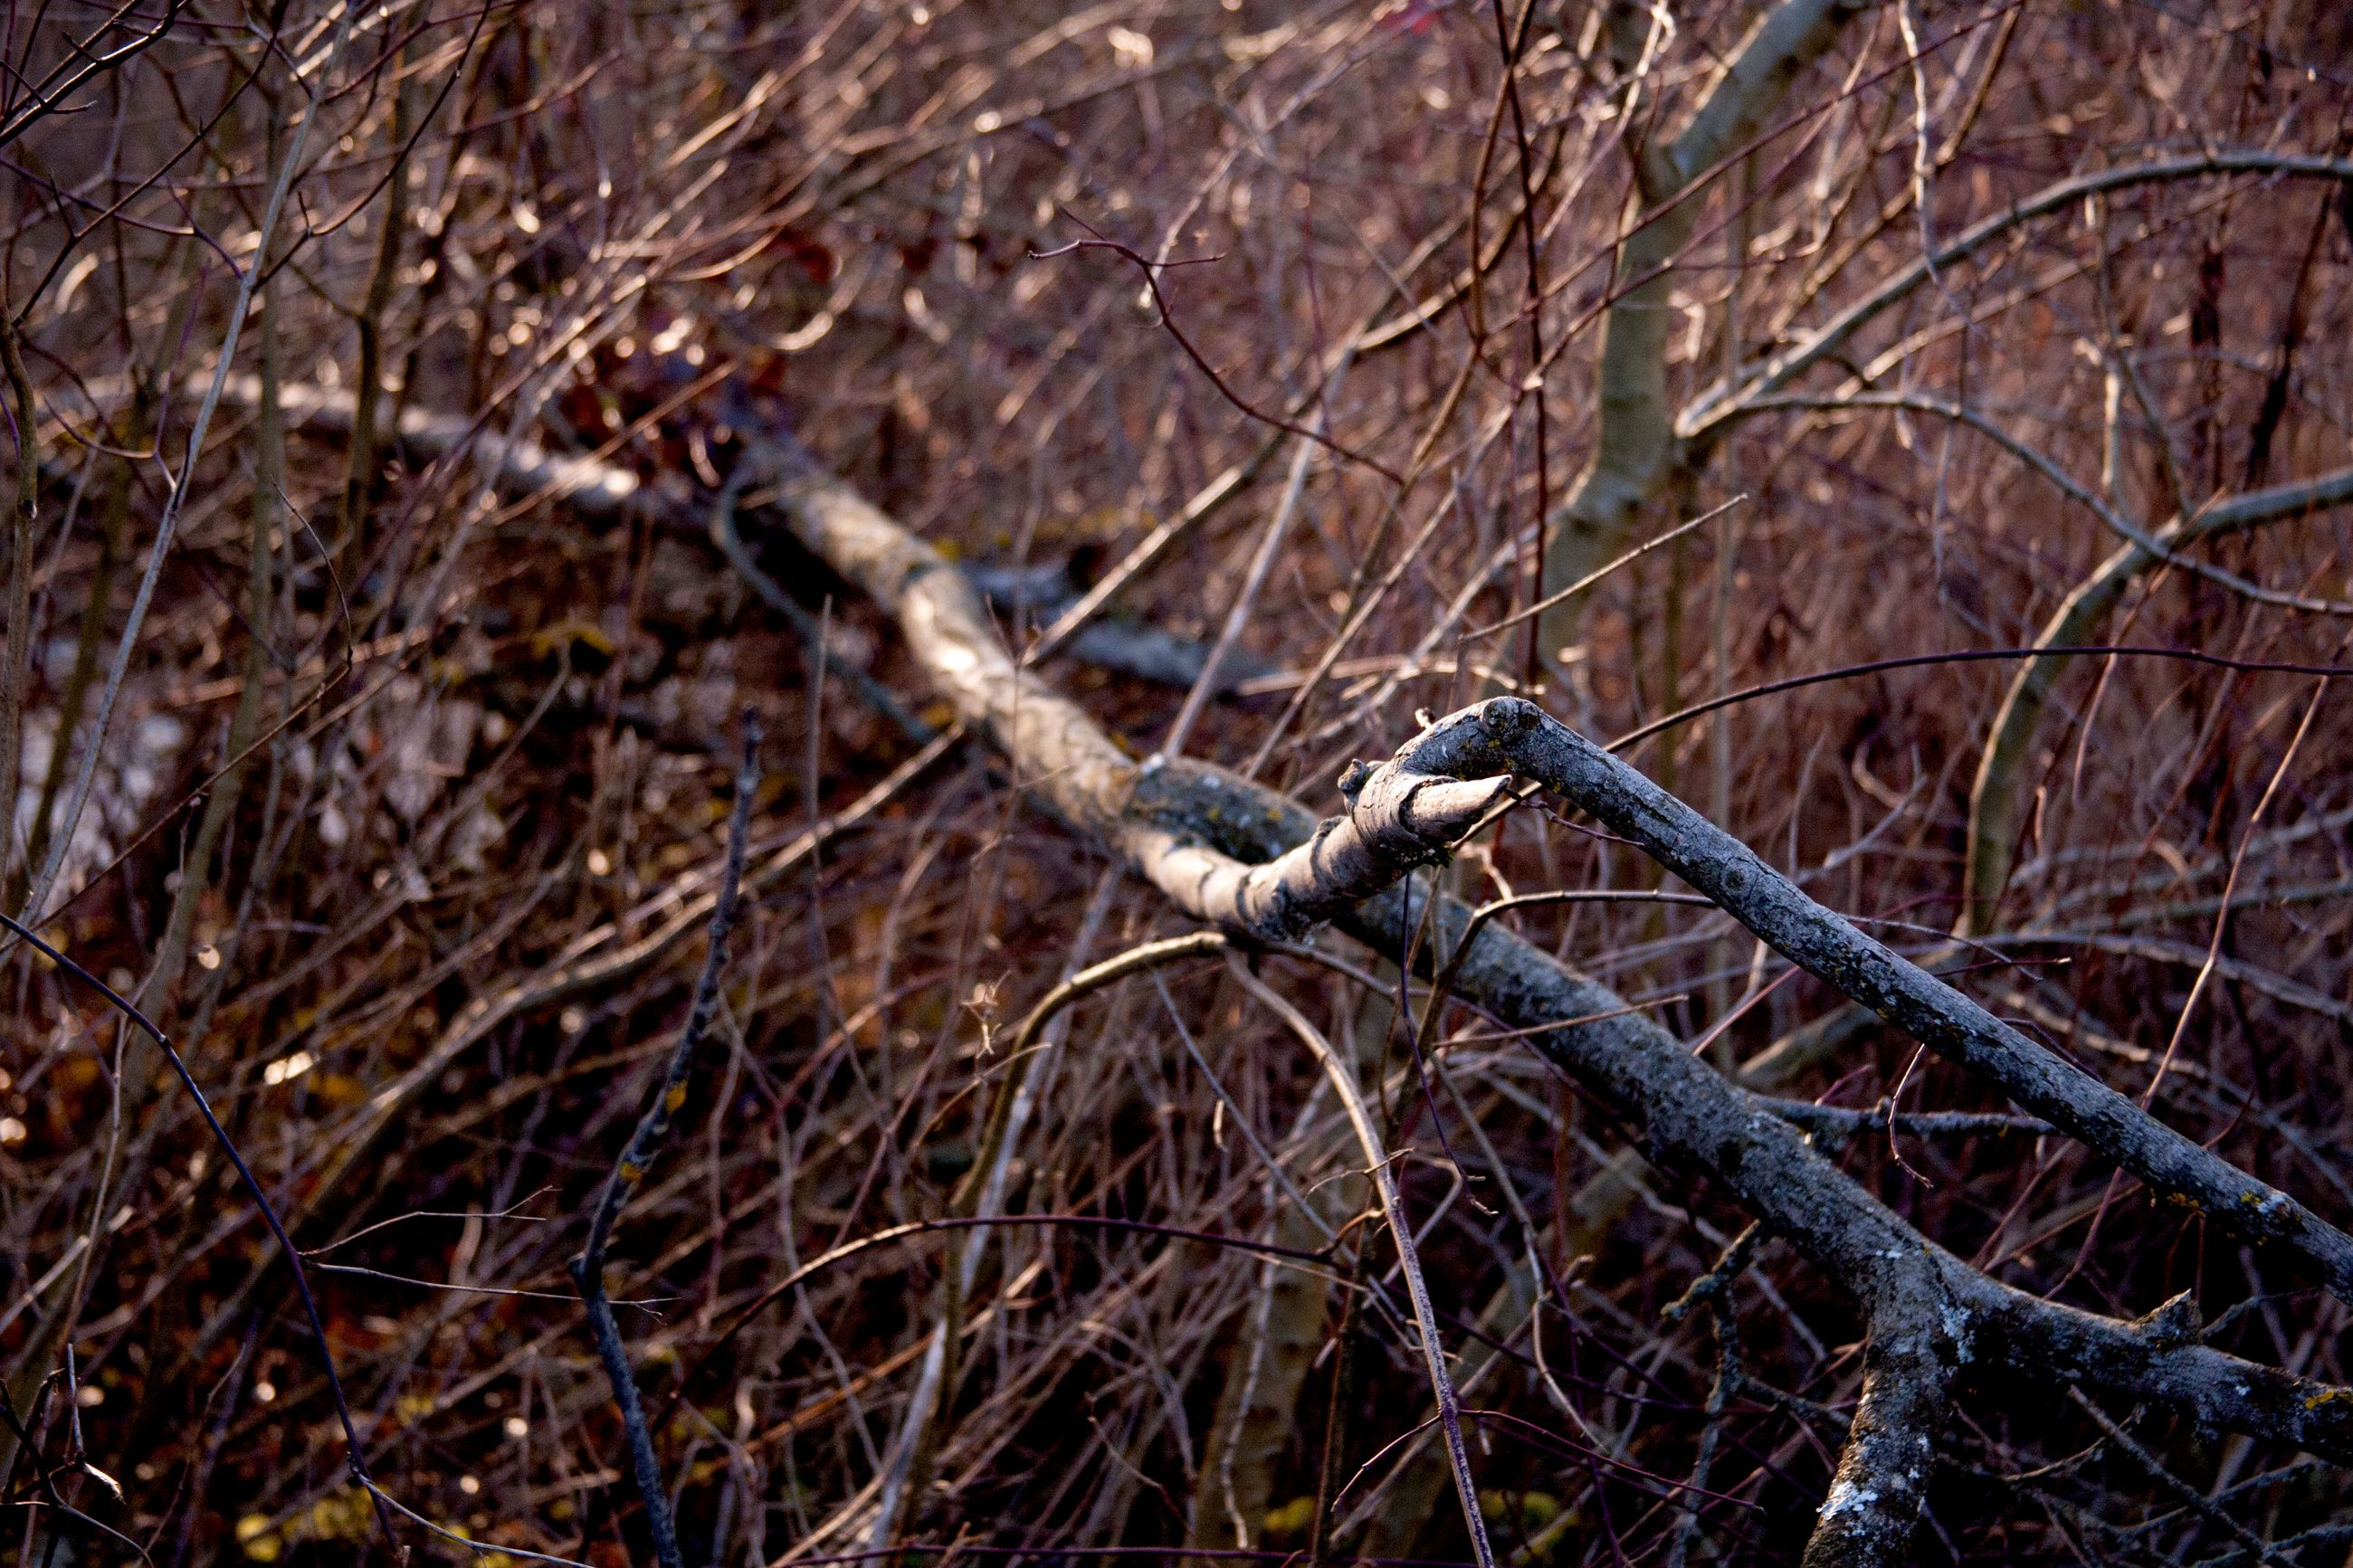 bare tree, branch, dead plant, dried plant, nature, tree, outdoors, no people, day, animals in the wild, one animal, forest, perching, animal themes, bird, beauty in nature, close-up